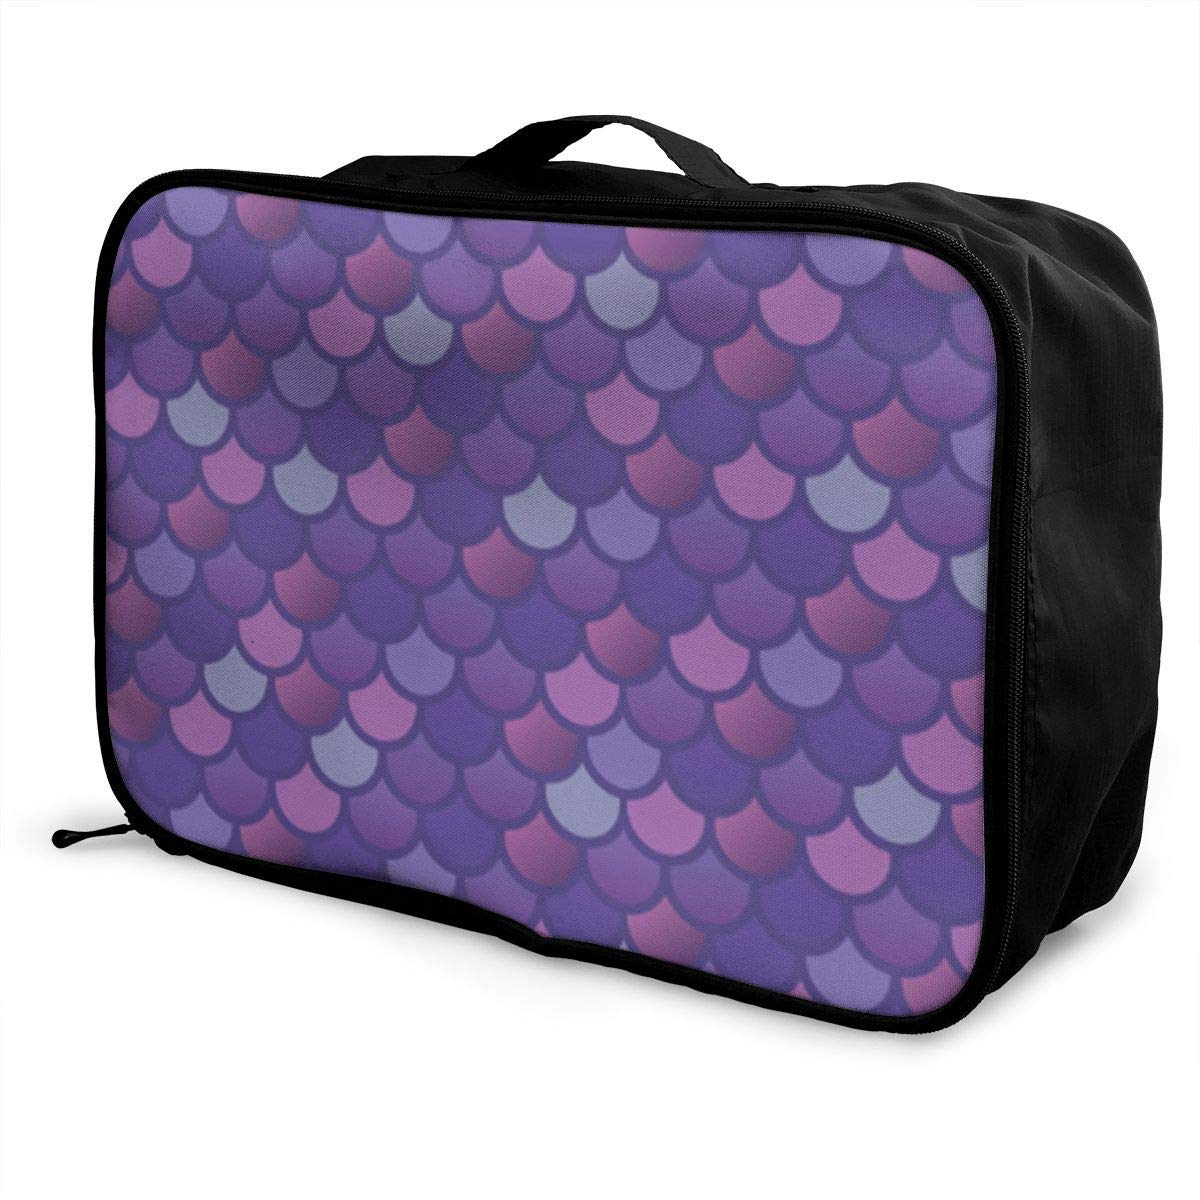 Portable Luggage Duffel Bag Mermaid Fish Scale Purple Pink Travel Bags Carry-on In Trolley Handle